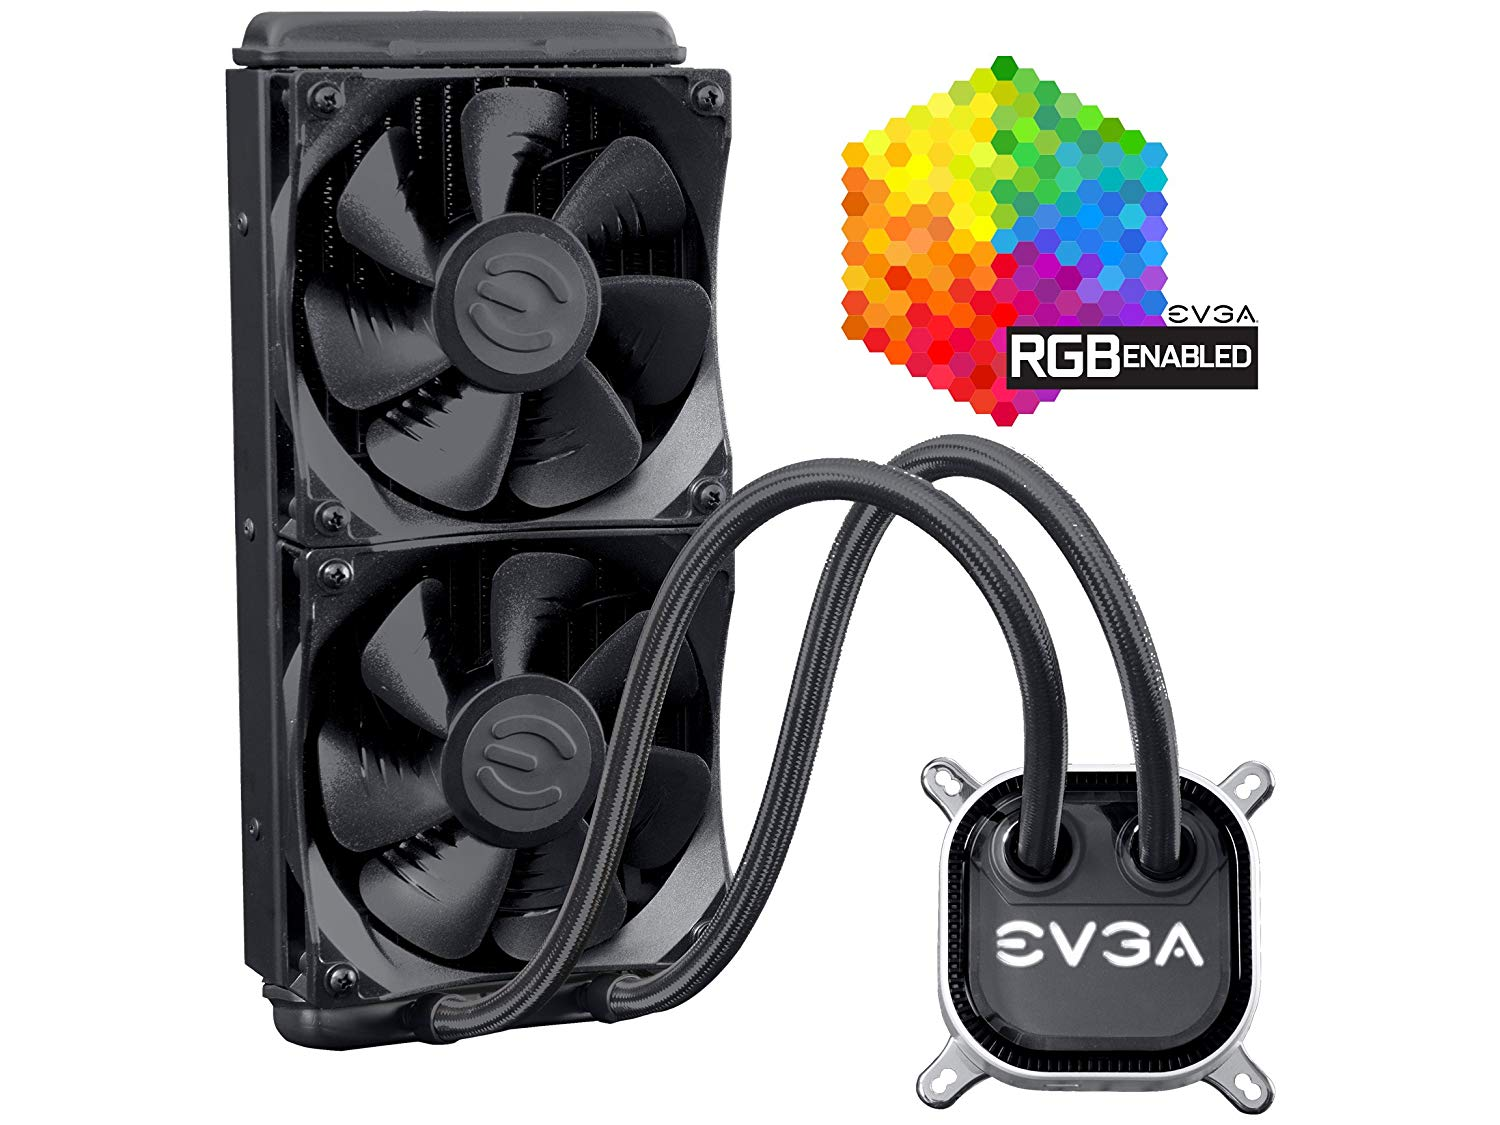 EVGA CLC 240 CPU Water Cooler